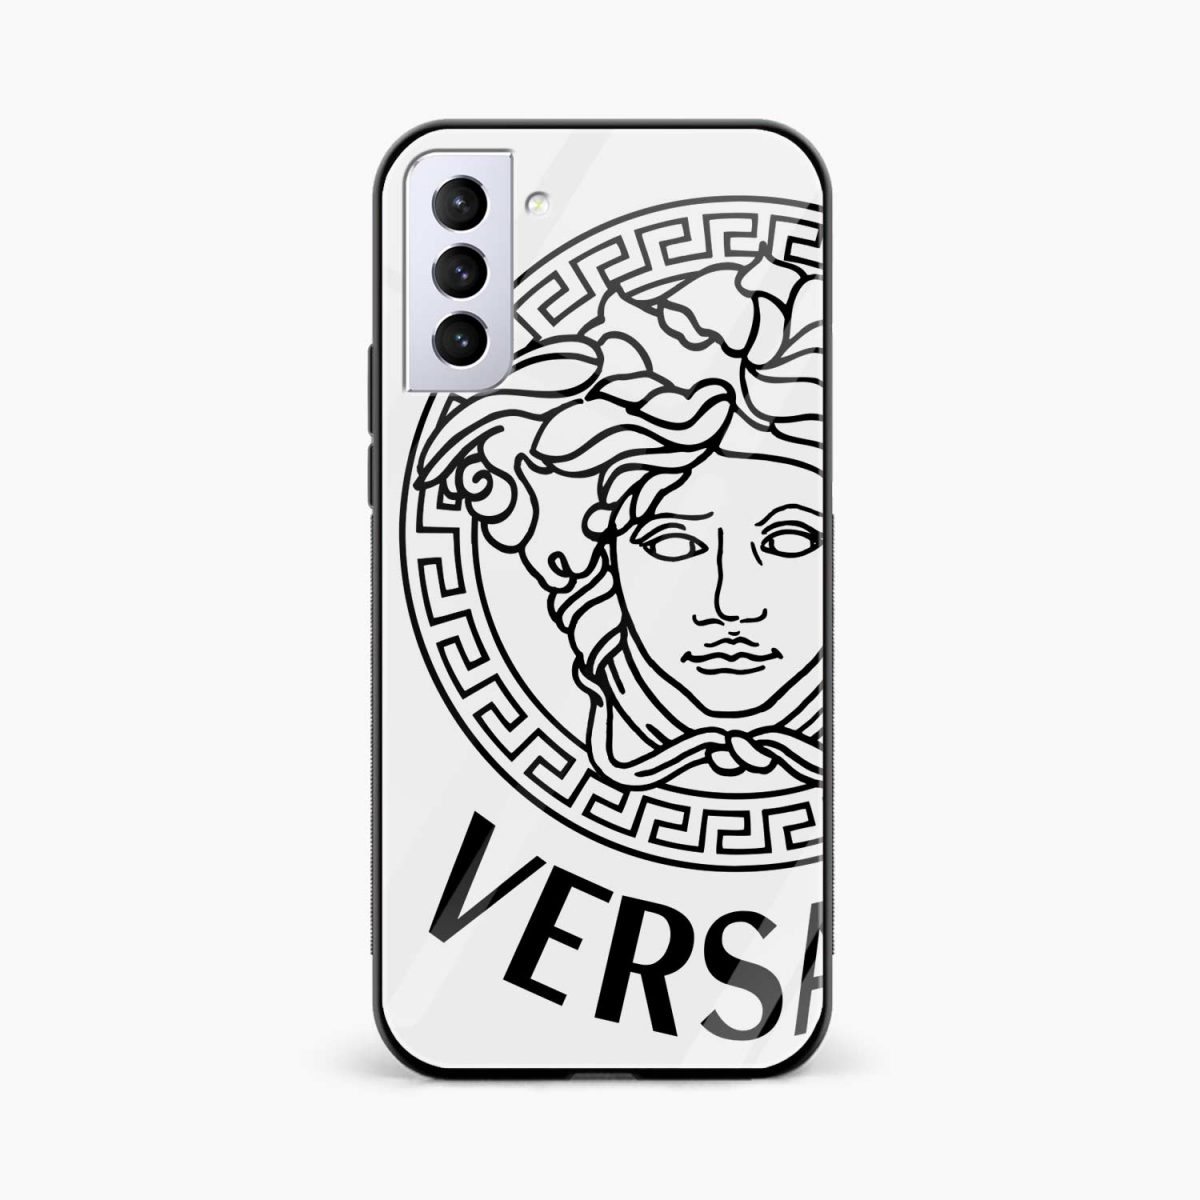 versace black white front view samsung s21 plug back cover